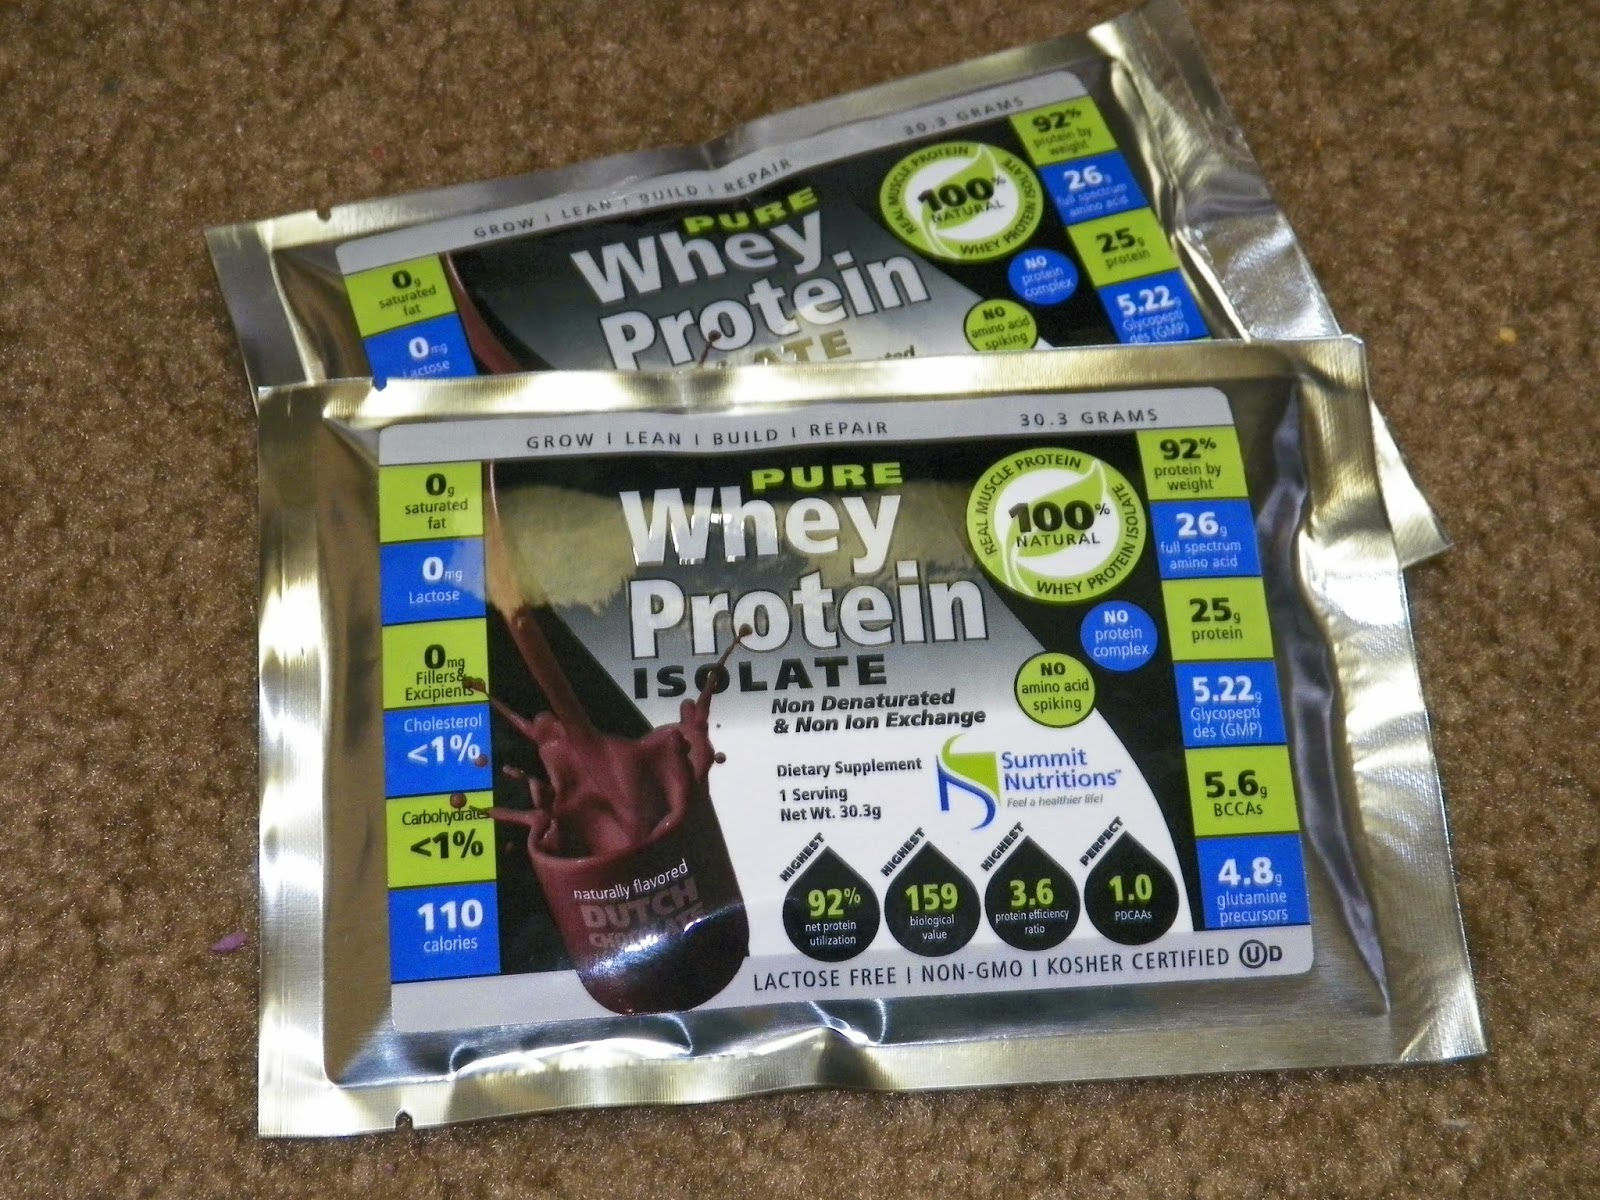 SummitNutritionsWheyProteinIsolate.jpg